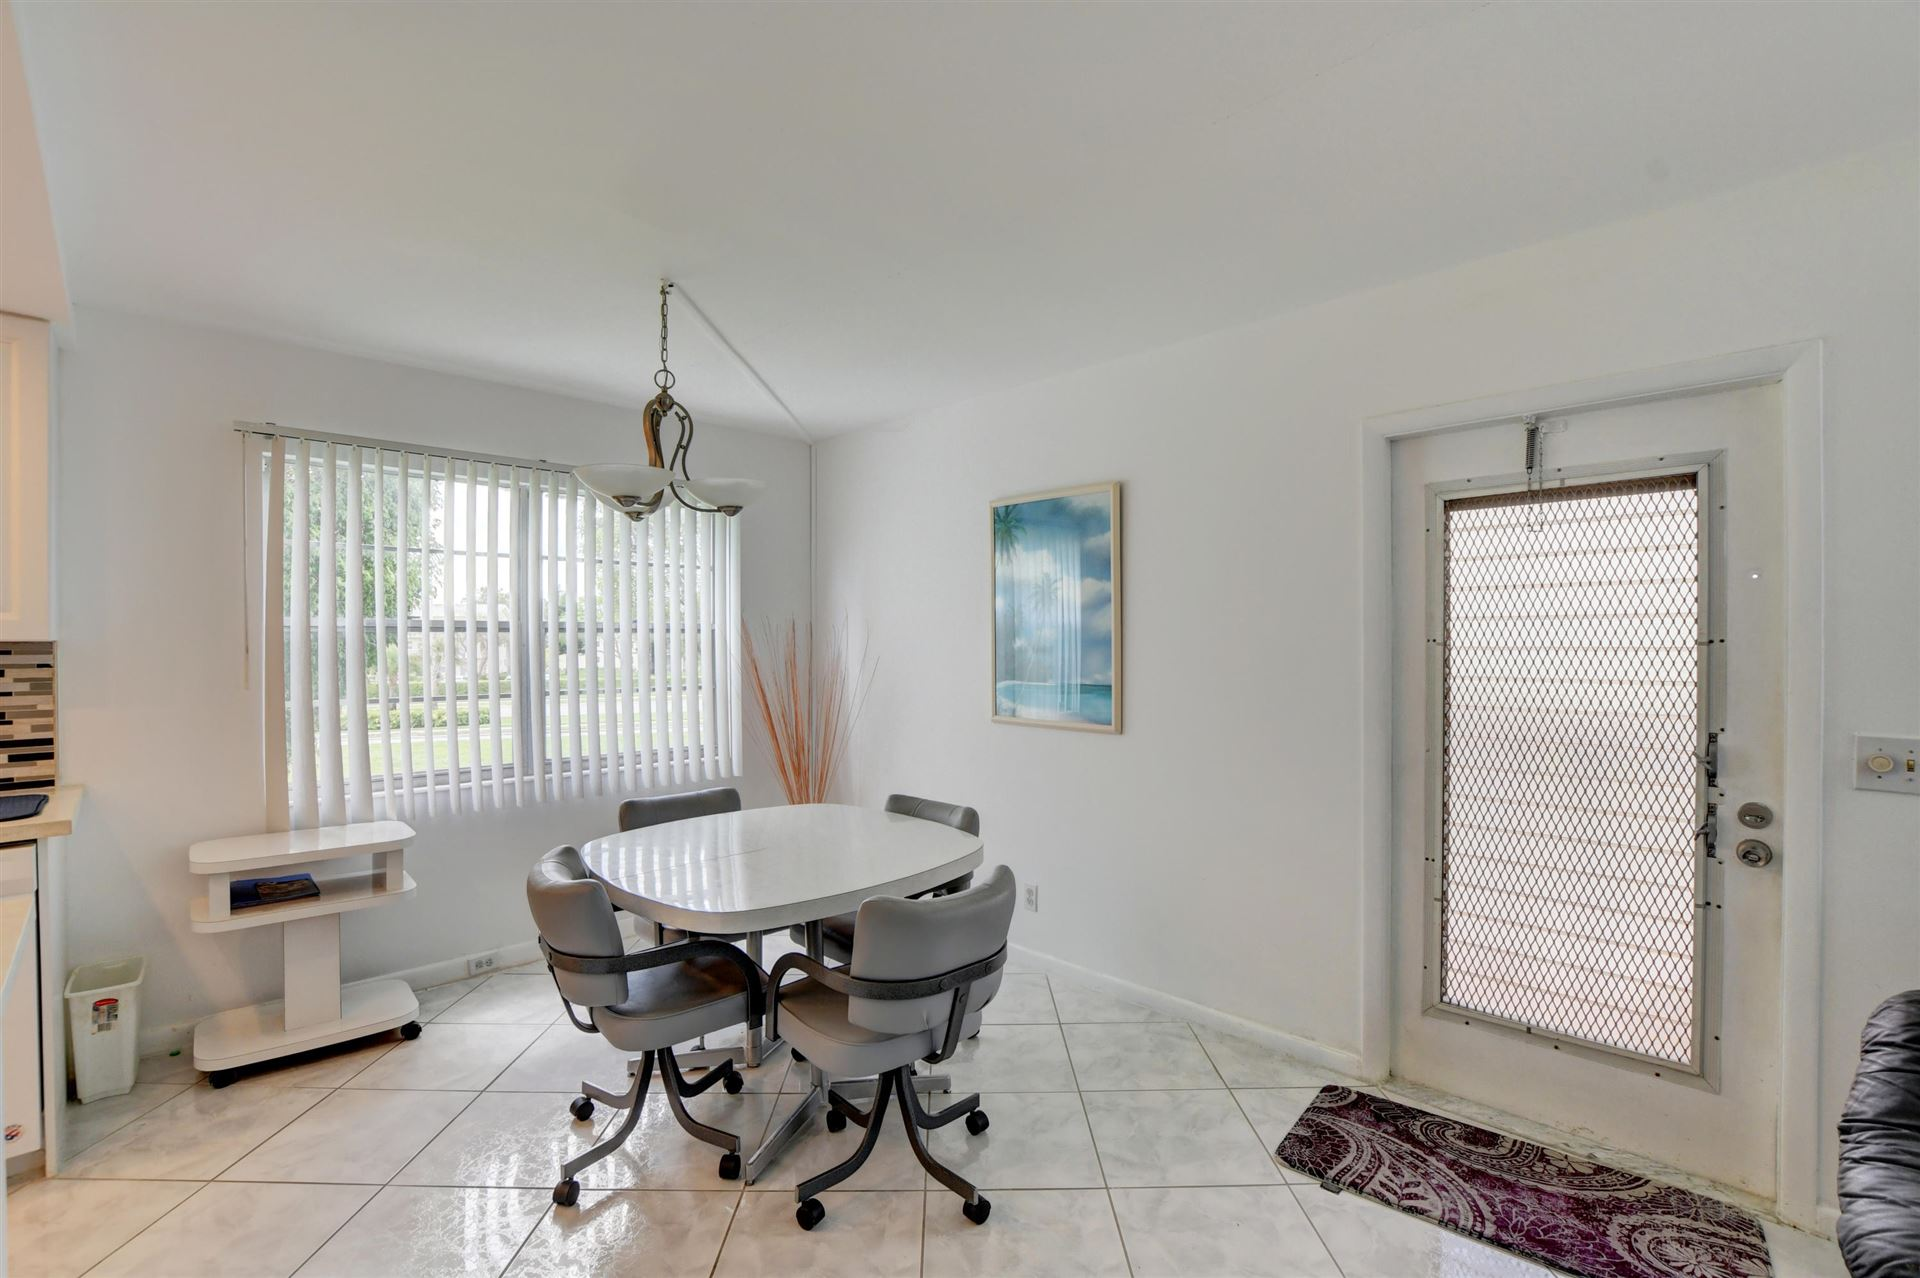 Photo of 2001 Cornwall A, Boca Raton, FL 33434 (MLS # RX-10716892)